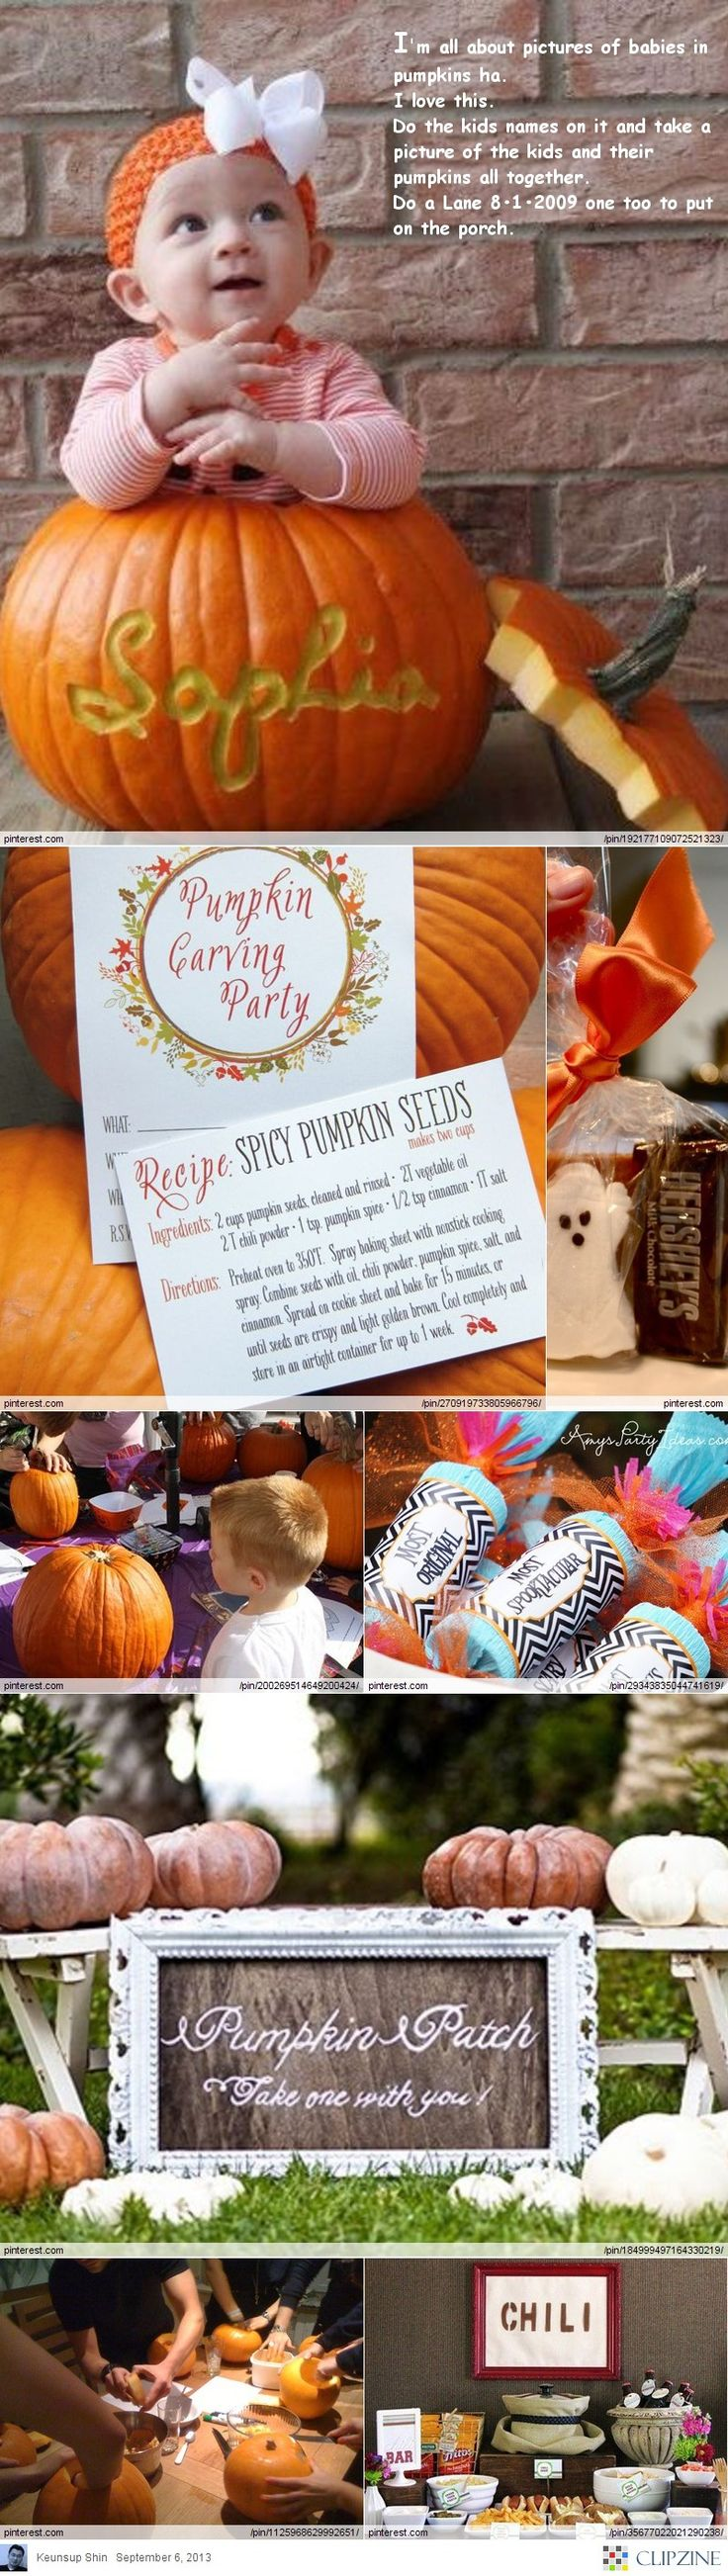 Creative Pumpkin Party Ideas--- I like the name carved into the pumpkin!